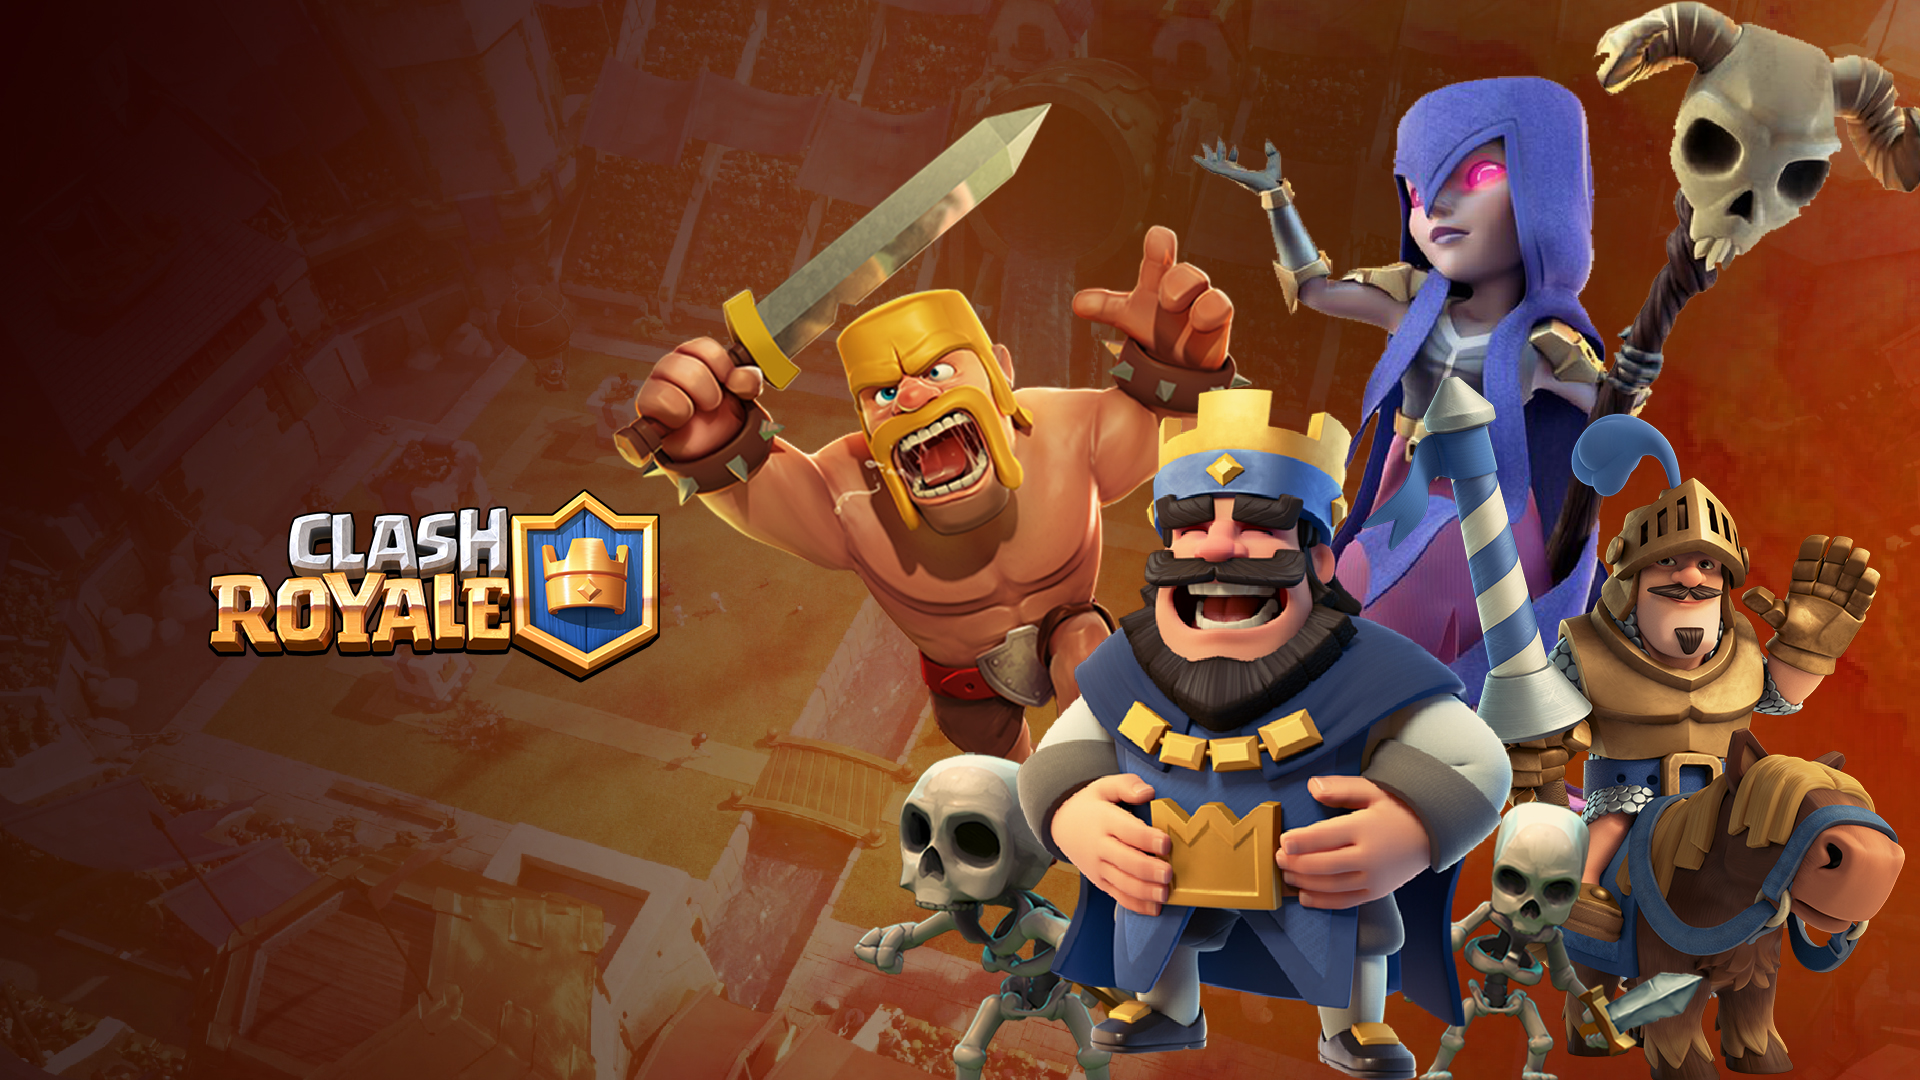 5563723 1920x1080 clash royale hd backgrounds